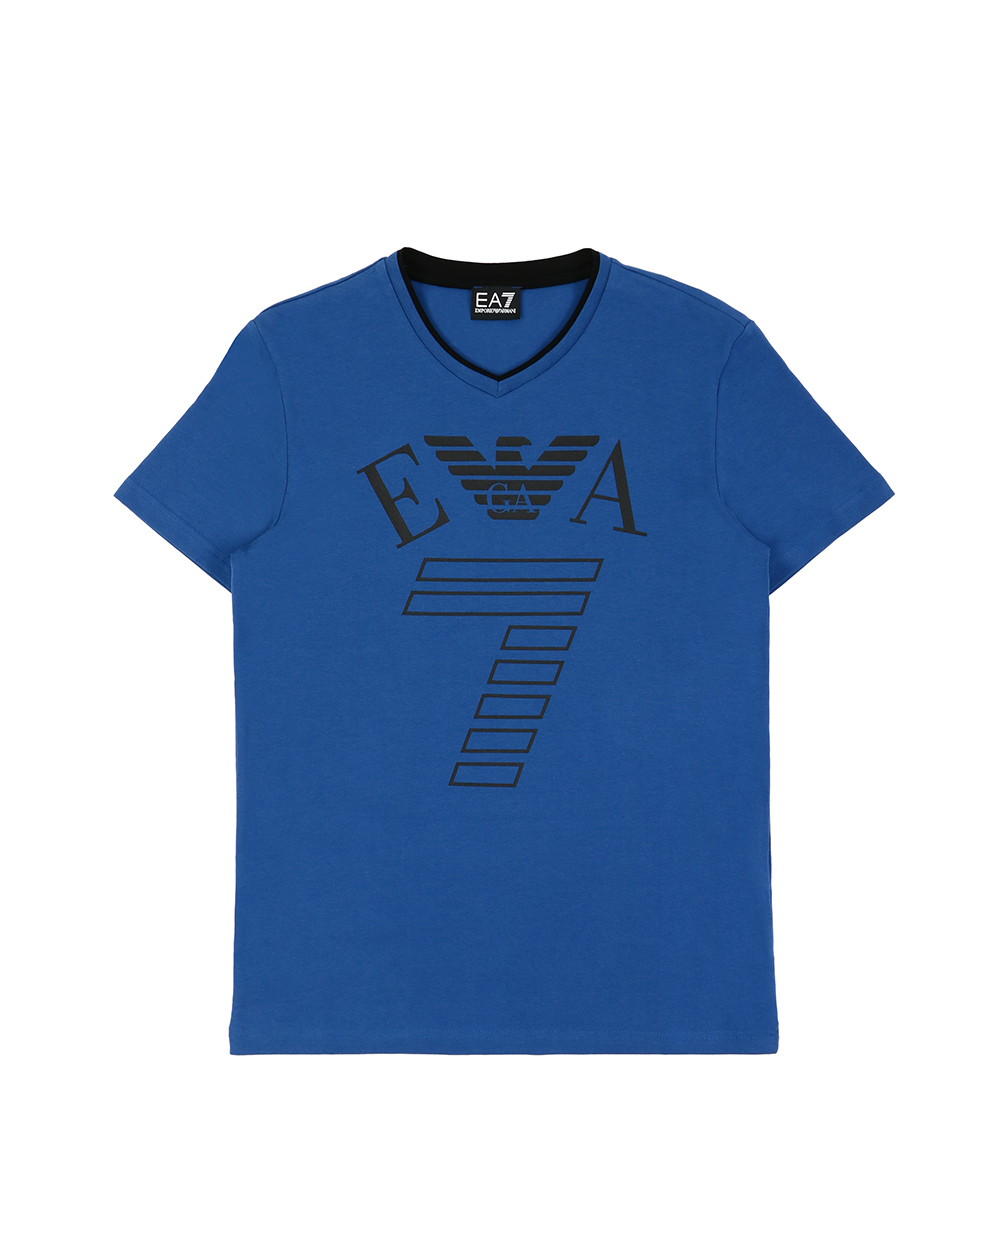 Logo Printed Round Neck Short Sleeved T-Shirt